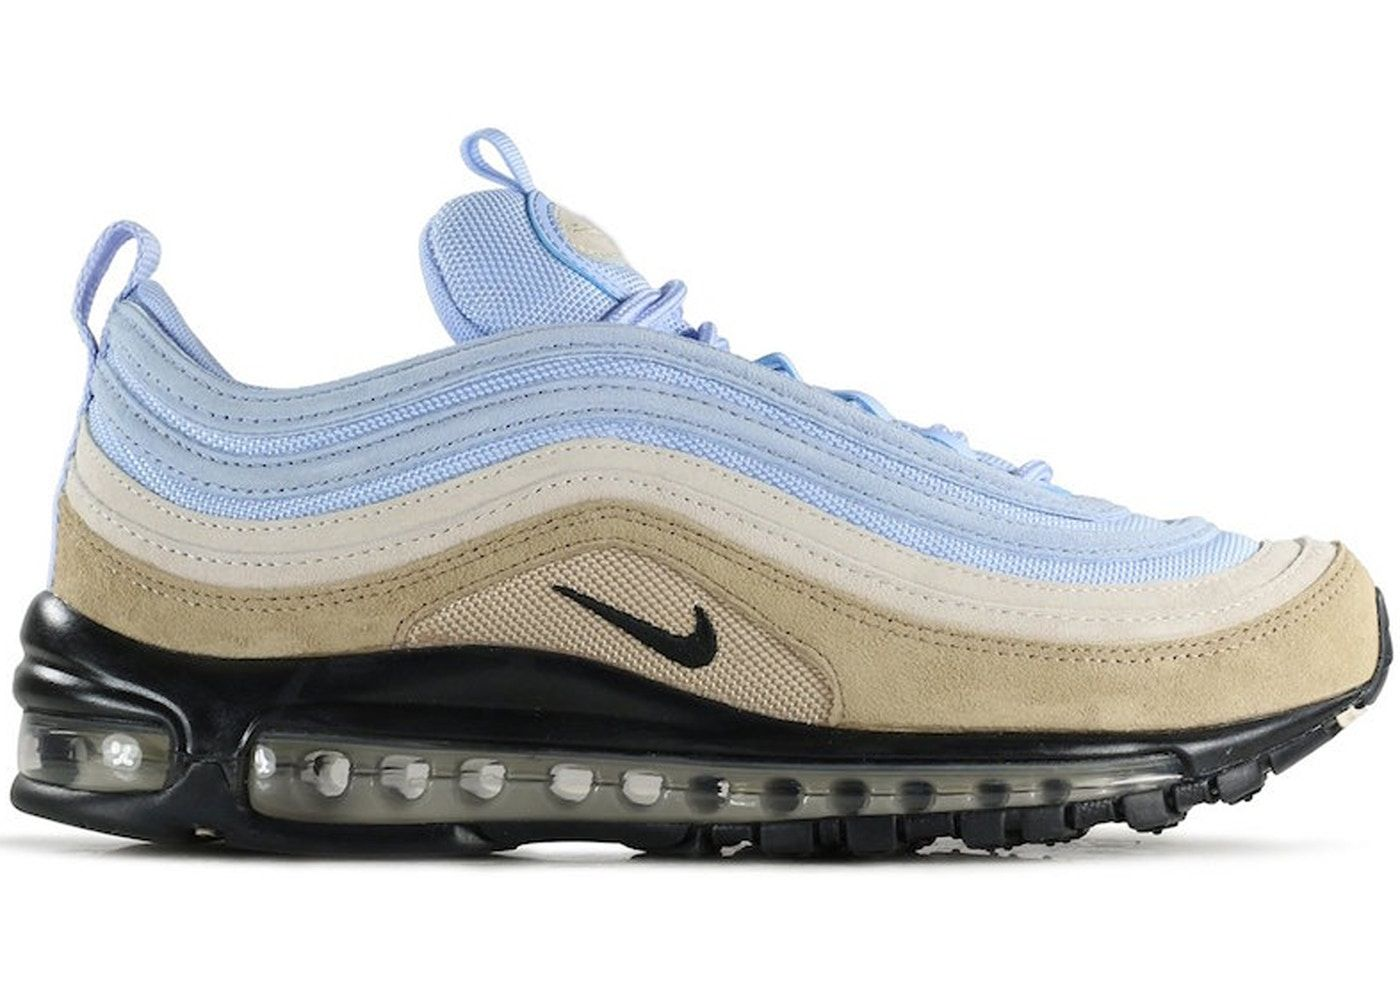 af160586 Nike 97 Desert Sky in 2019 | Shoeporn | Air max, Air max 97, Air max ...